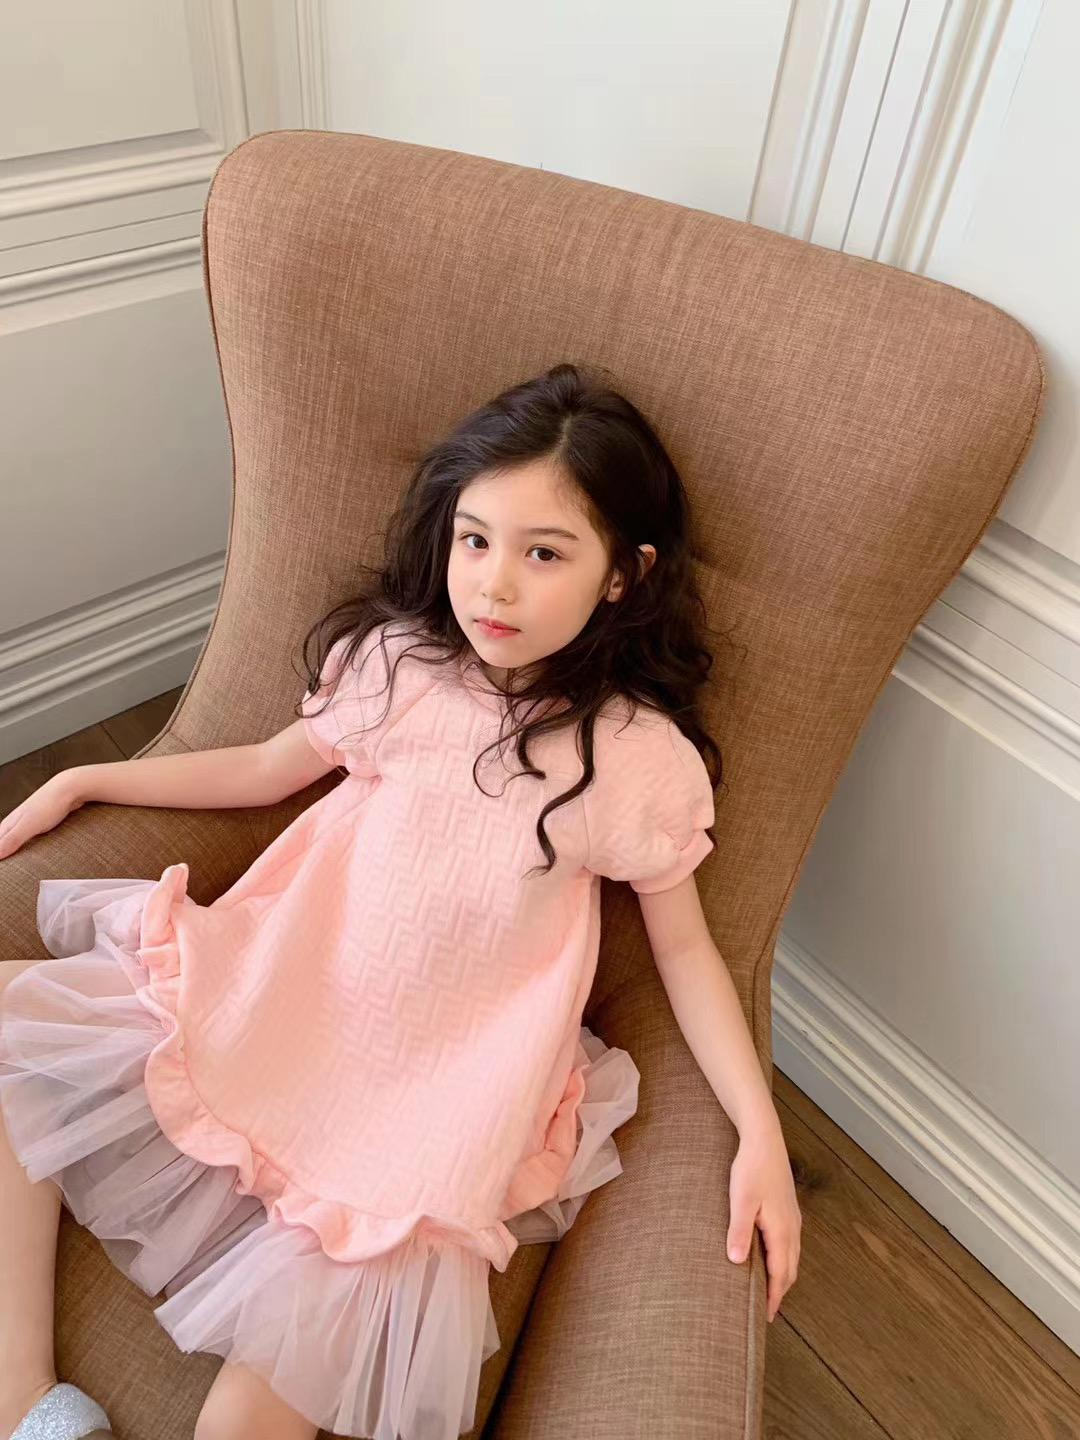 New Summer Fashion Toddlers Girls Dress Dress 2021 Bebuny Girl Lace Princess Dress Bambini Girls Birthday Party Dress rosa